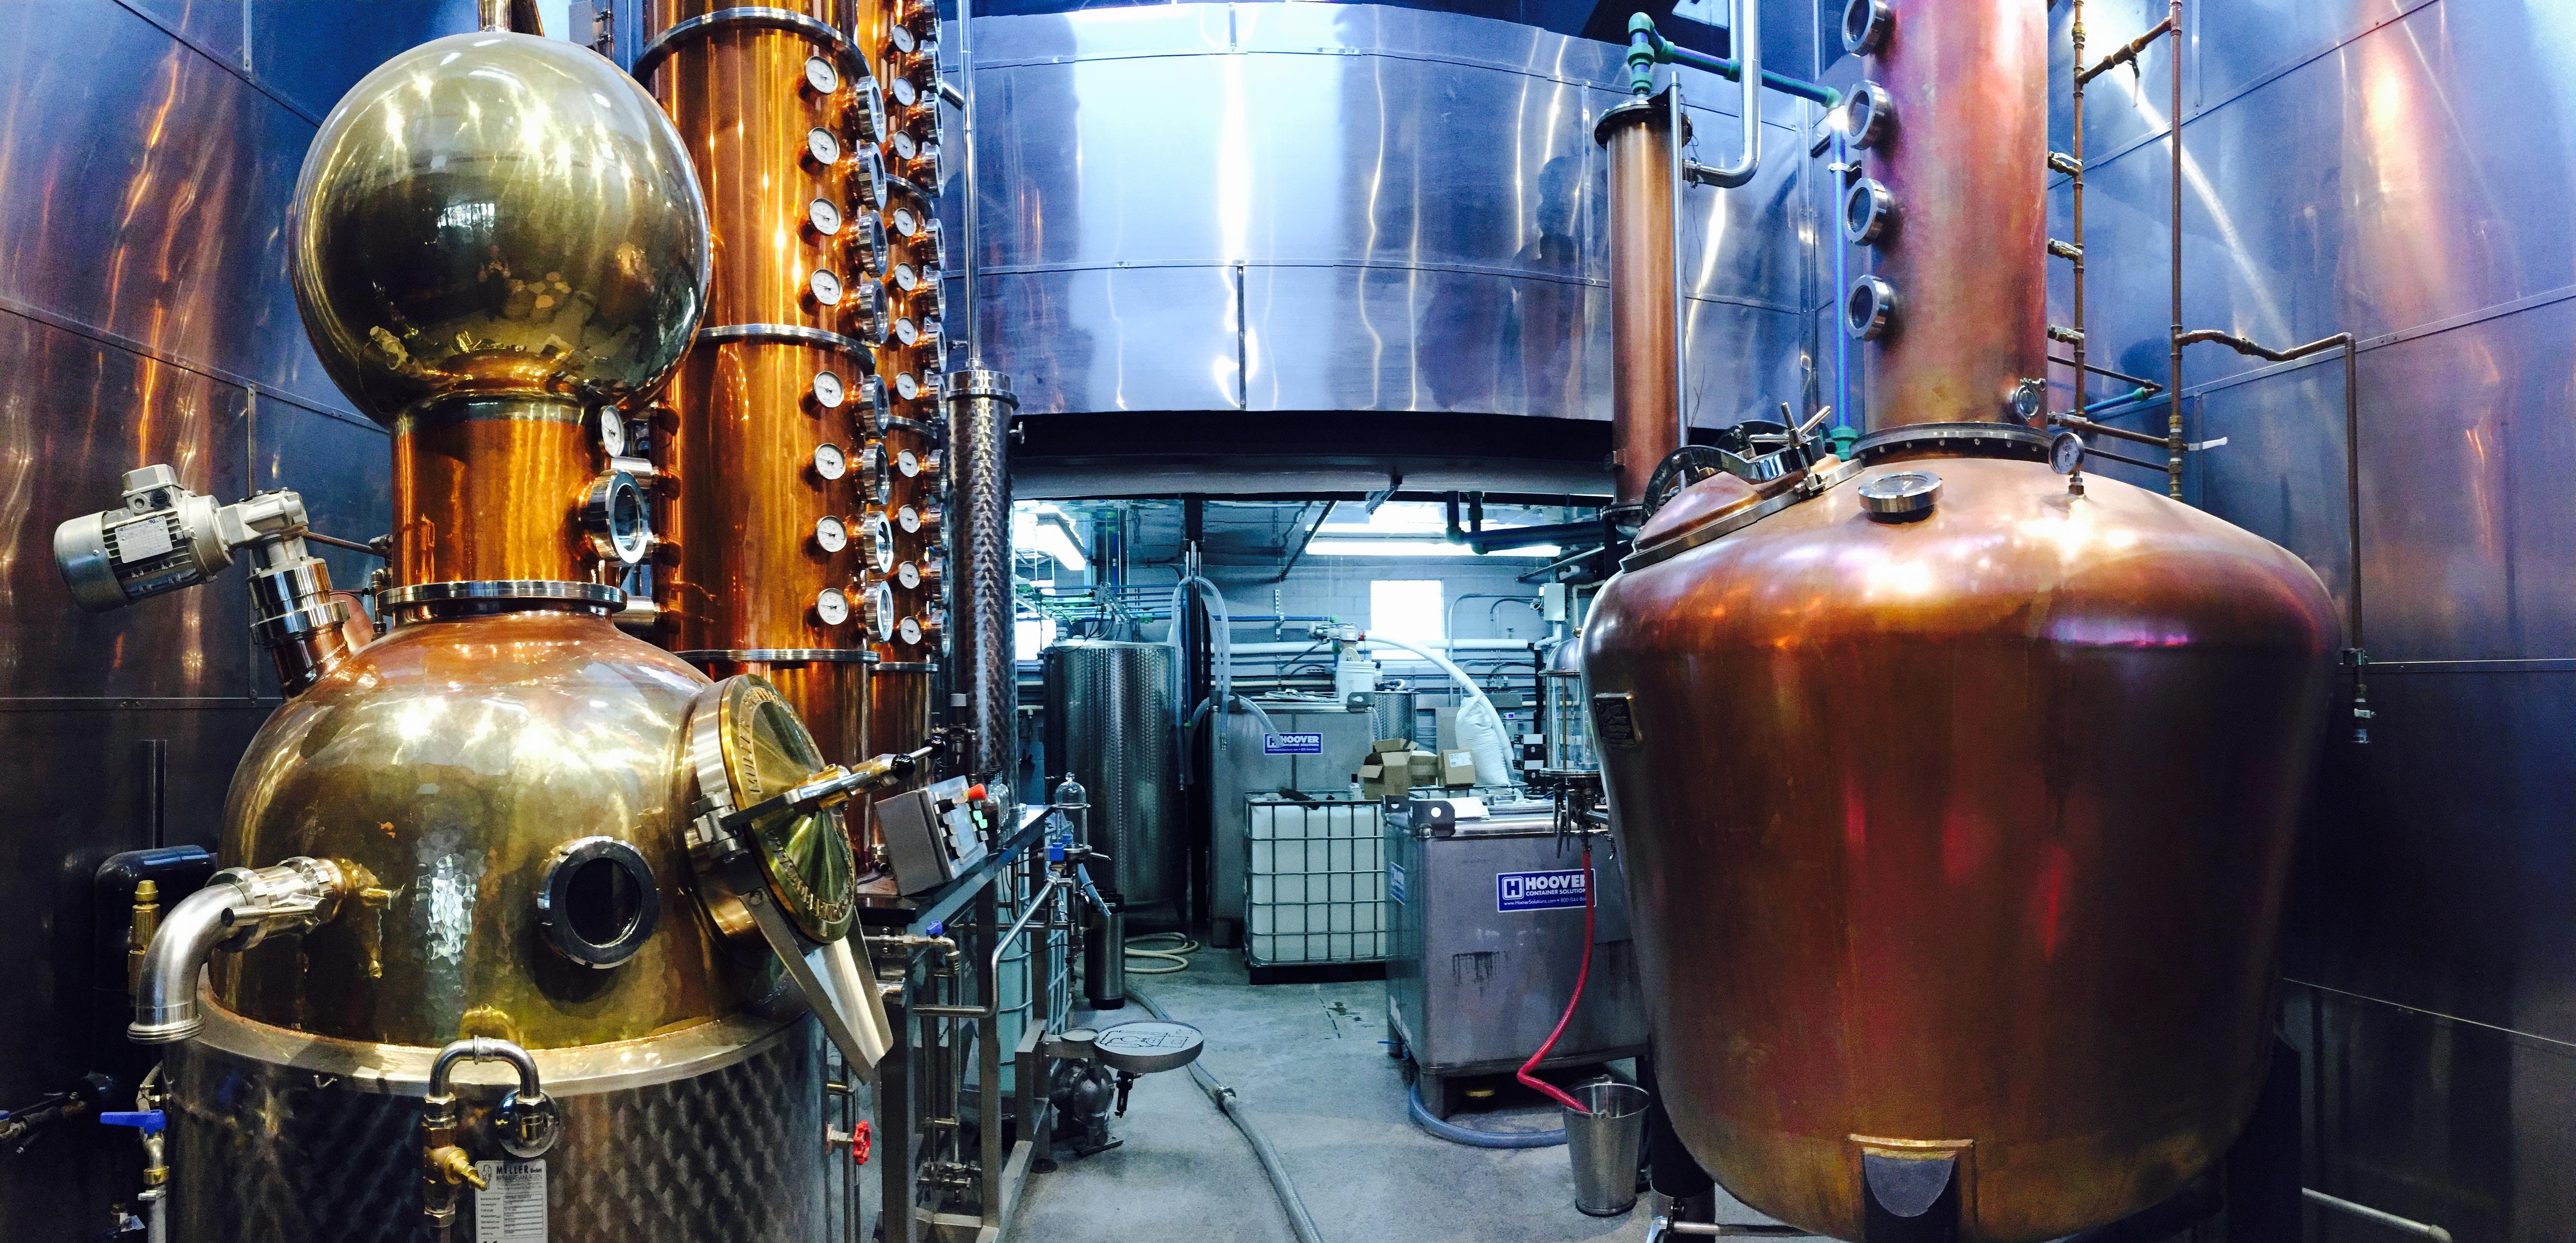 Distillery Tour at Long Road Distillers